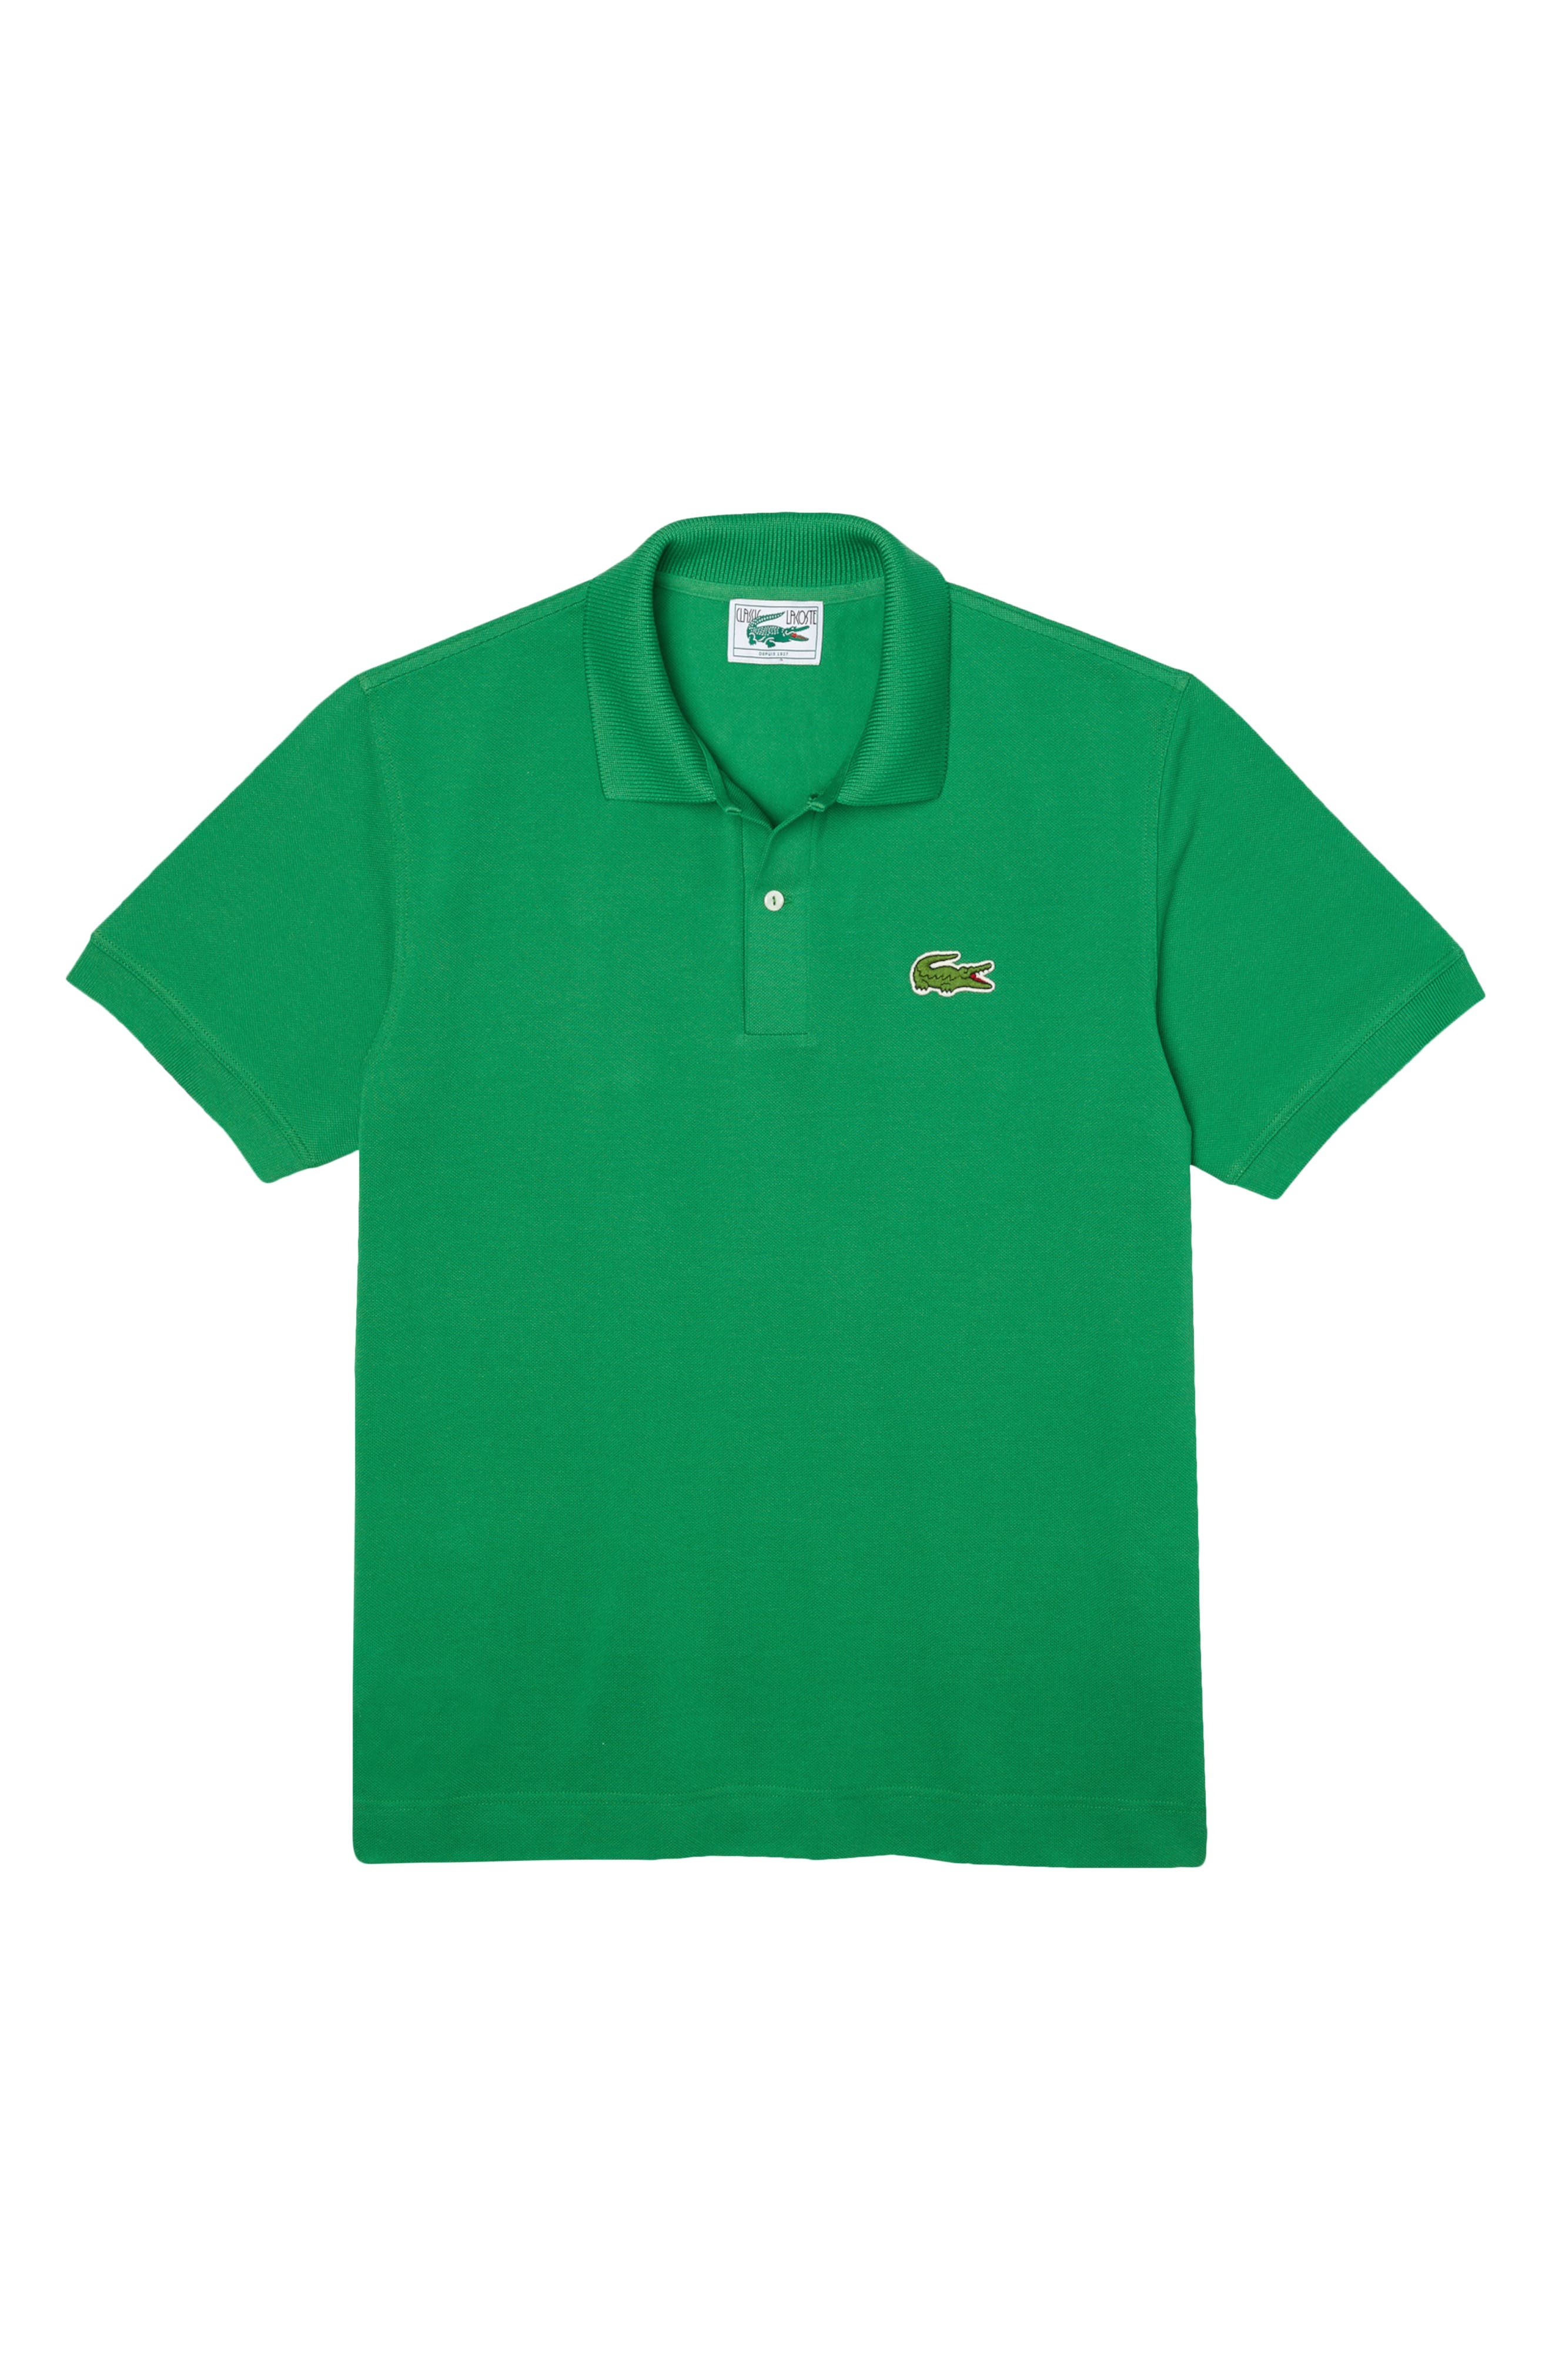 Men's Lacoste Polo Shirts | Nordstrom